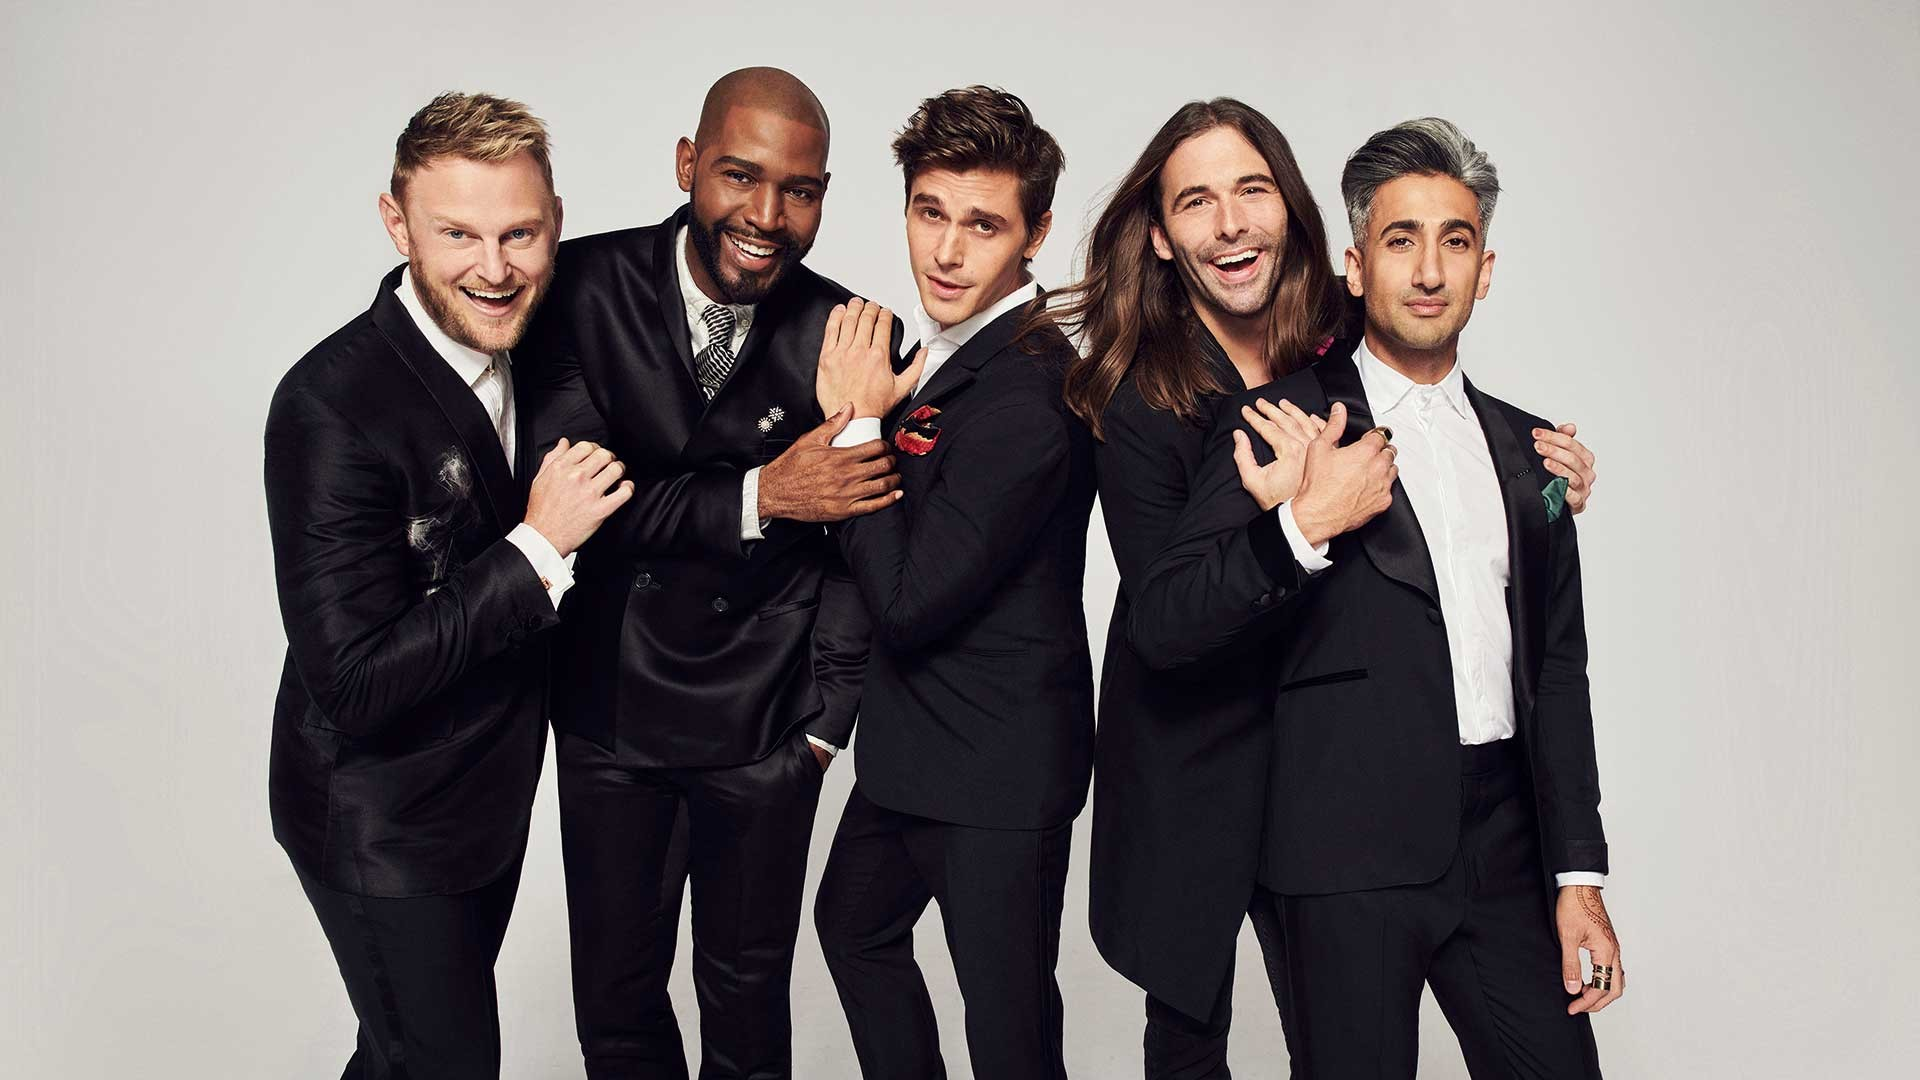 The cast of the relaunched Queer Eye